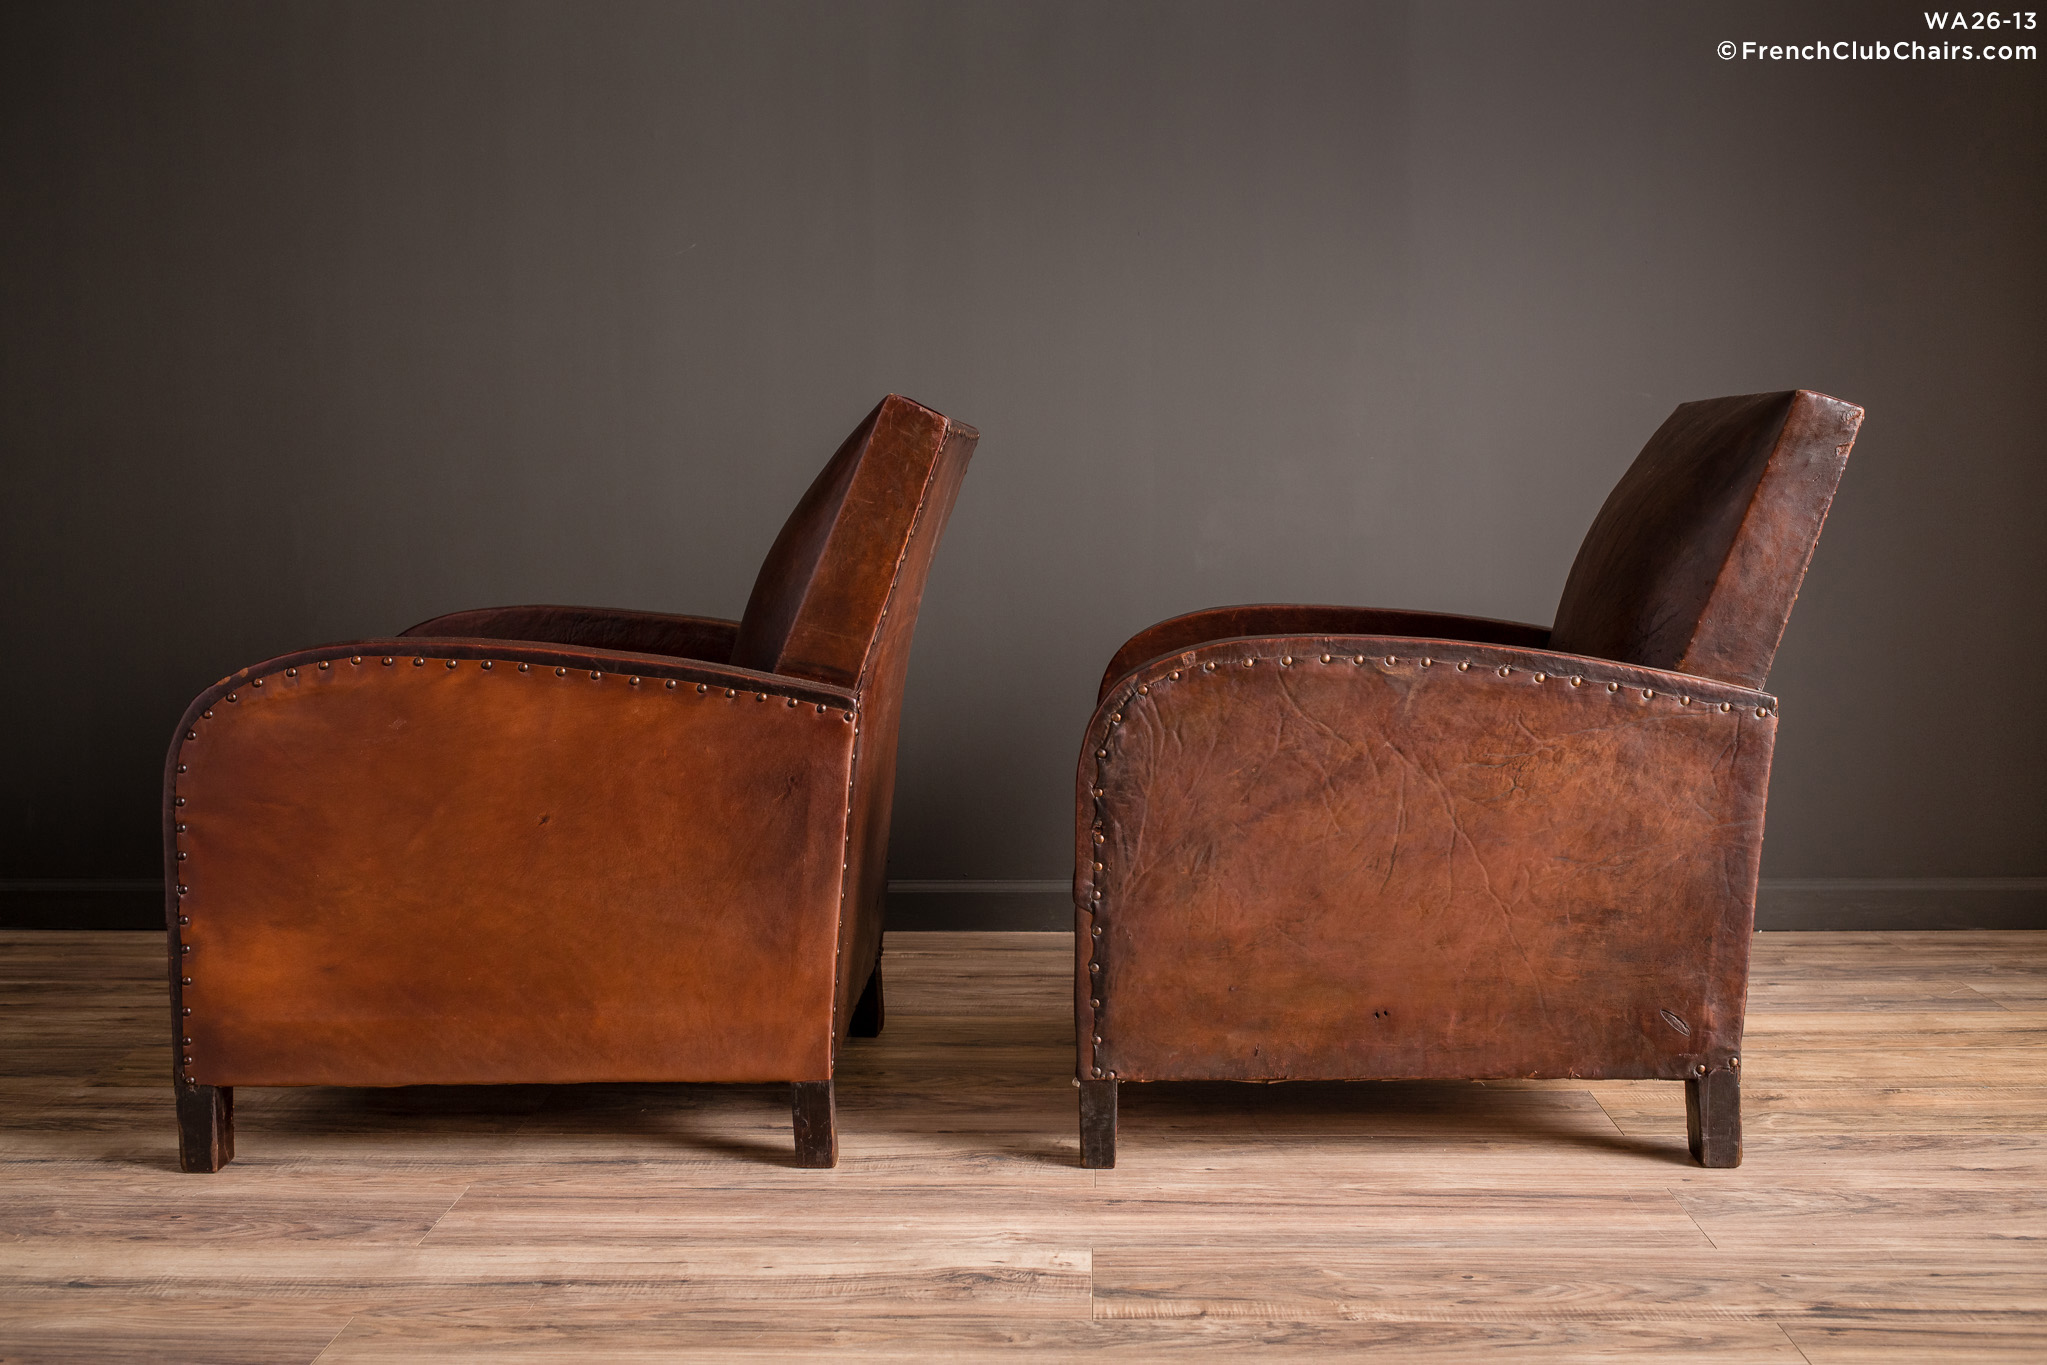 WA_26-13_Brest_Square_Pair_R_4LT-v01-williams-antiks-leather-french-club-chair-wa_fcccom